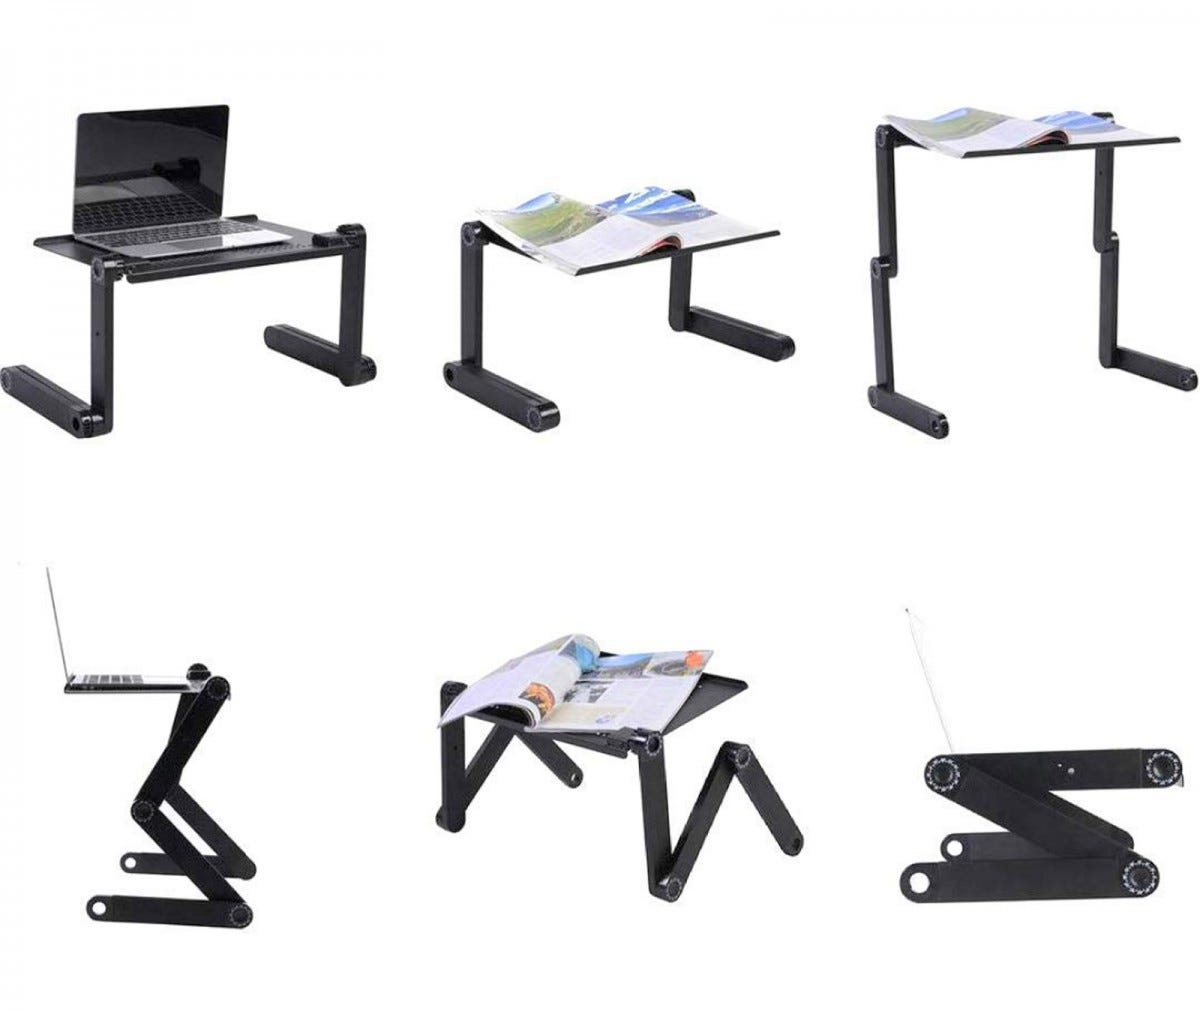 The EXYST Adjustable Laptop Table Stand in six different positions with laptops or magazines on top.